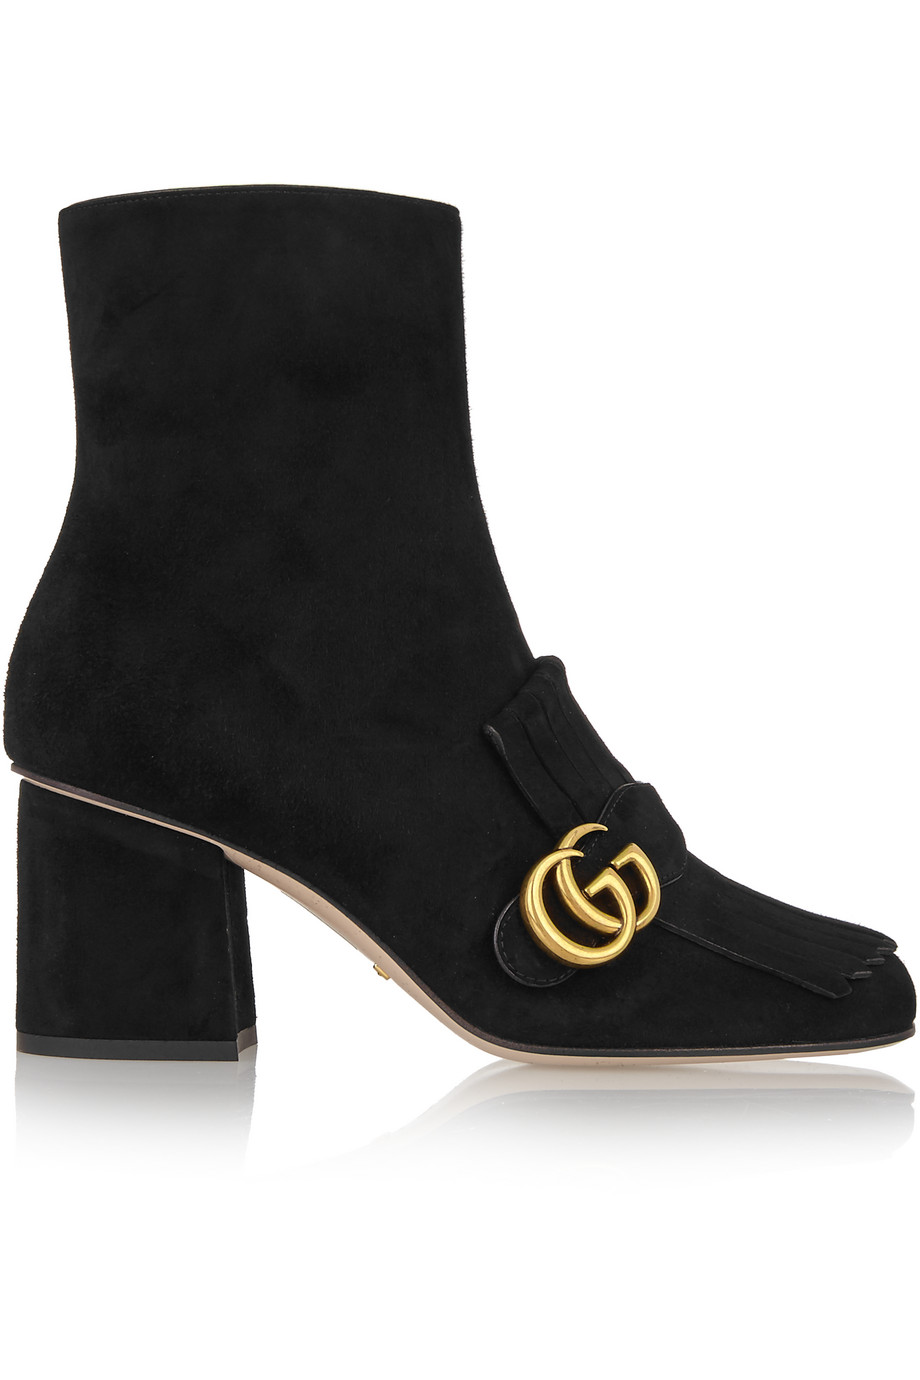 Gucci Fringed Suede Ankle Boots, Black, Women's US Size: 5, Size: 35.5